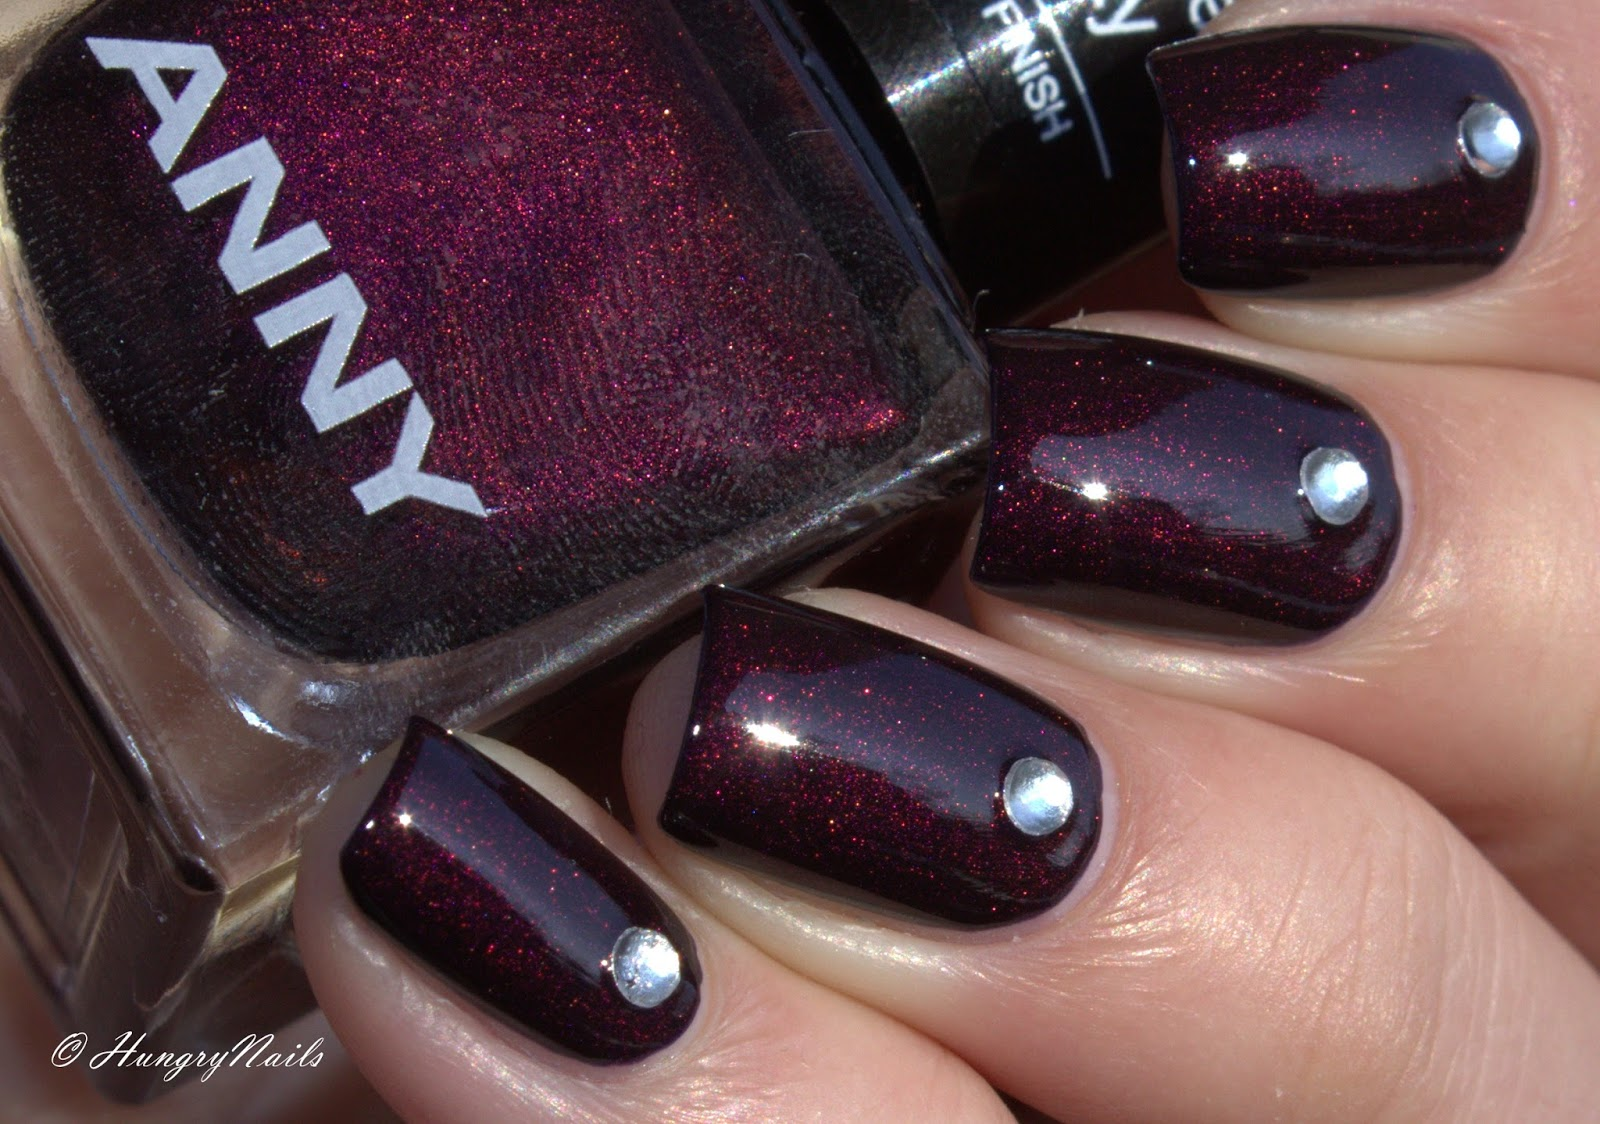 http://hungrynails.blogspot.com/2015/03/swatches-anny-046-private-party.html